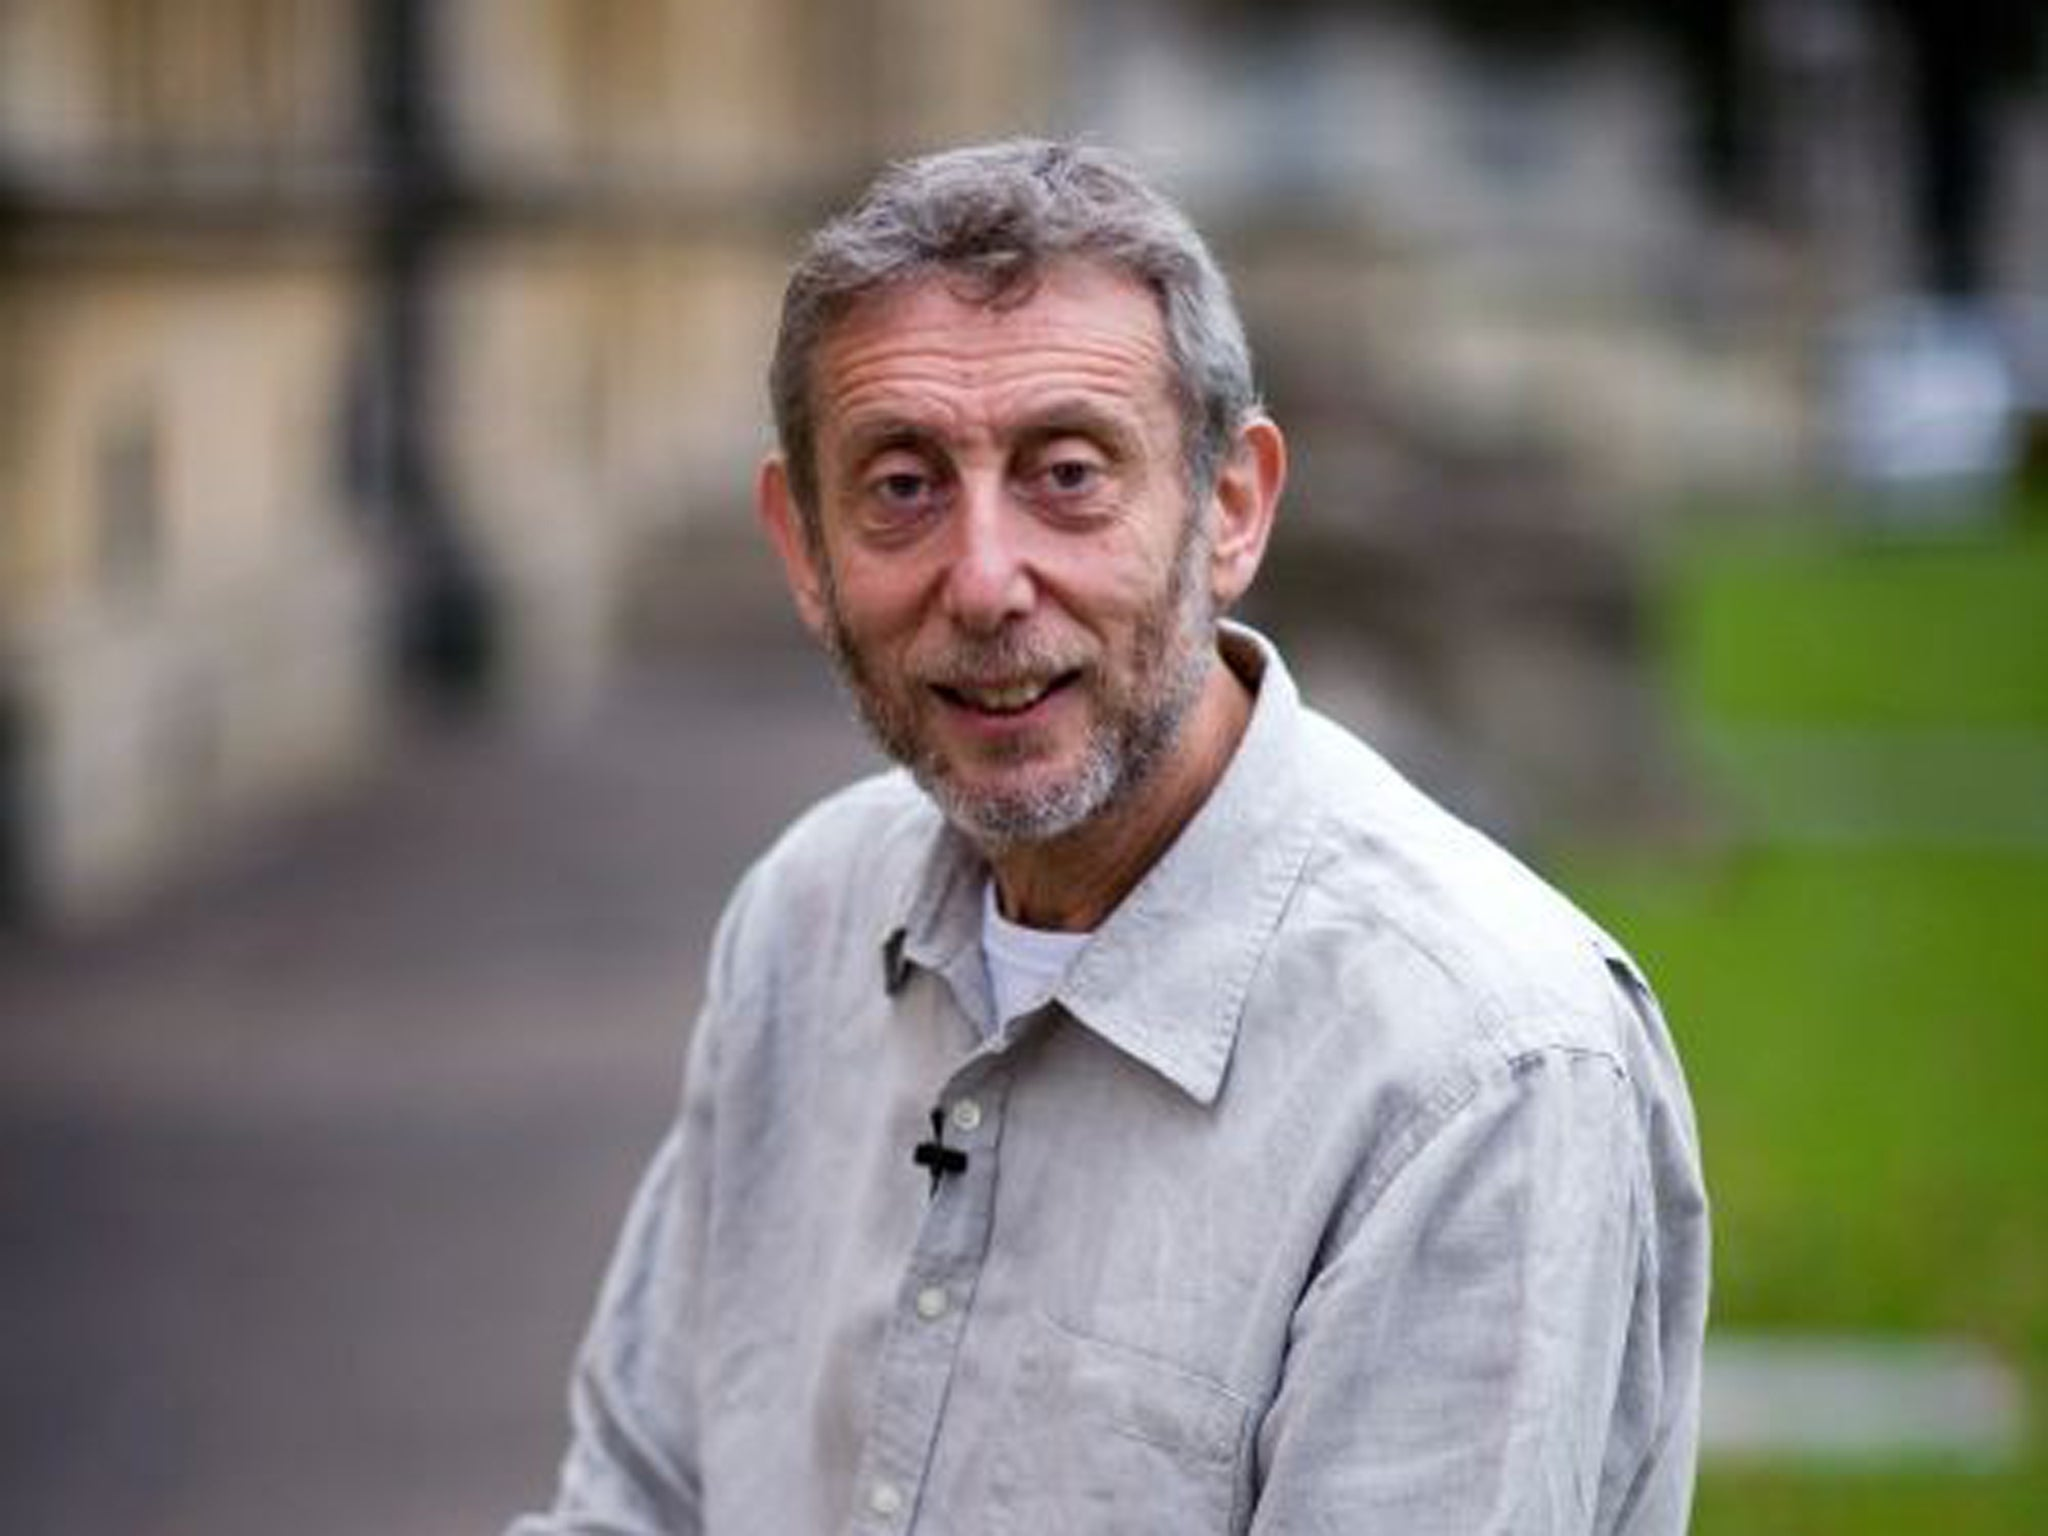 Michael Rosen out of intensive care after eight weeks in hospital, wife says